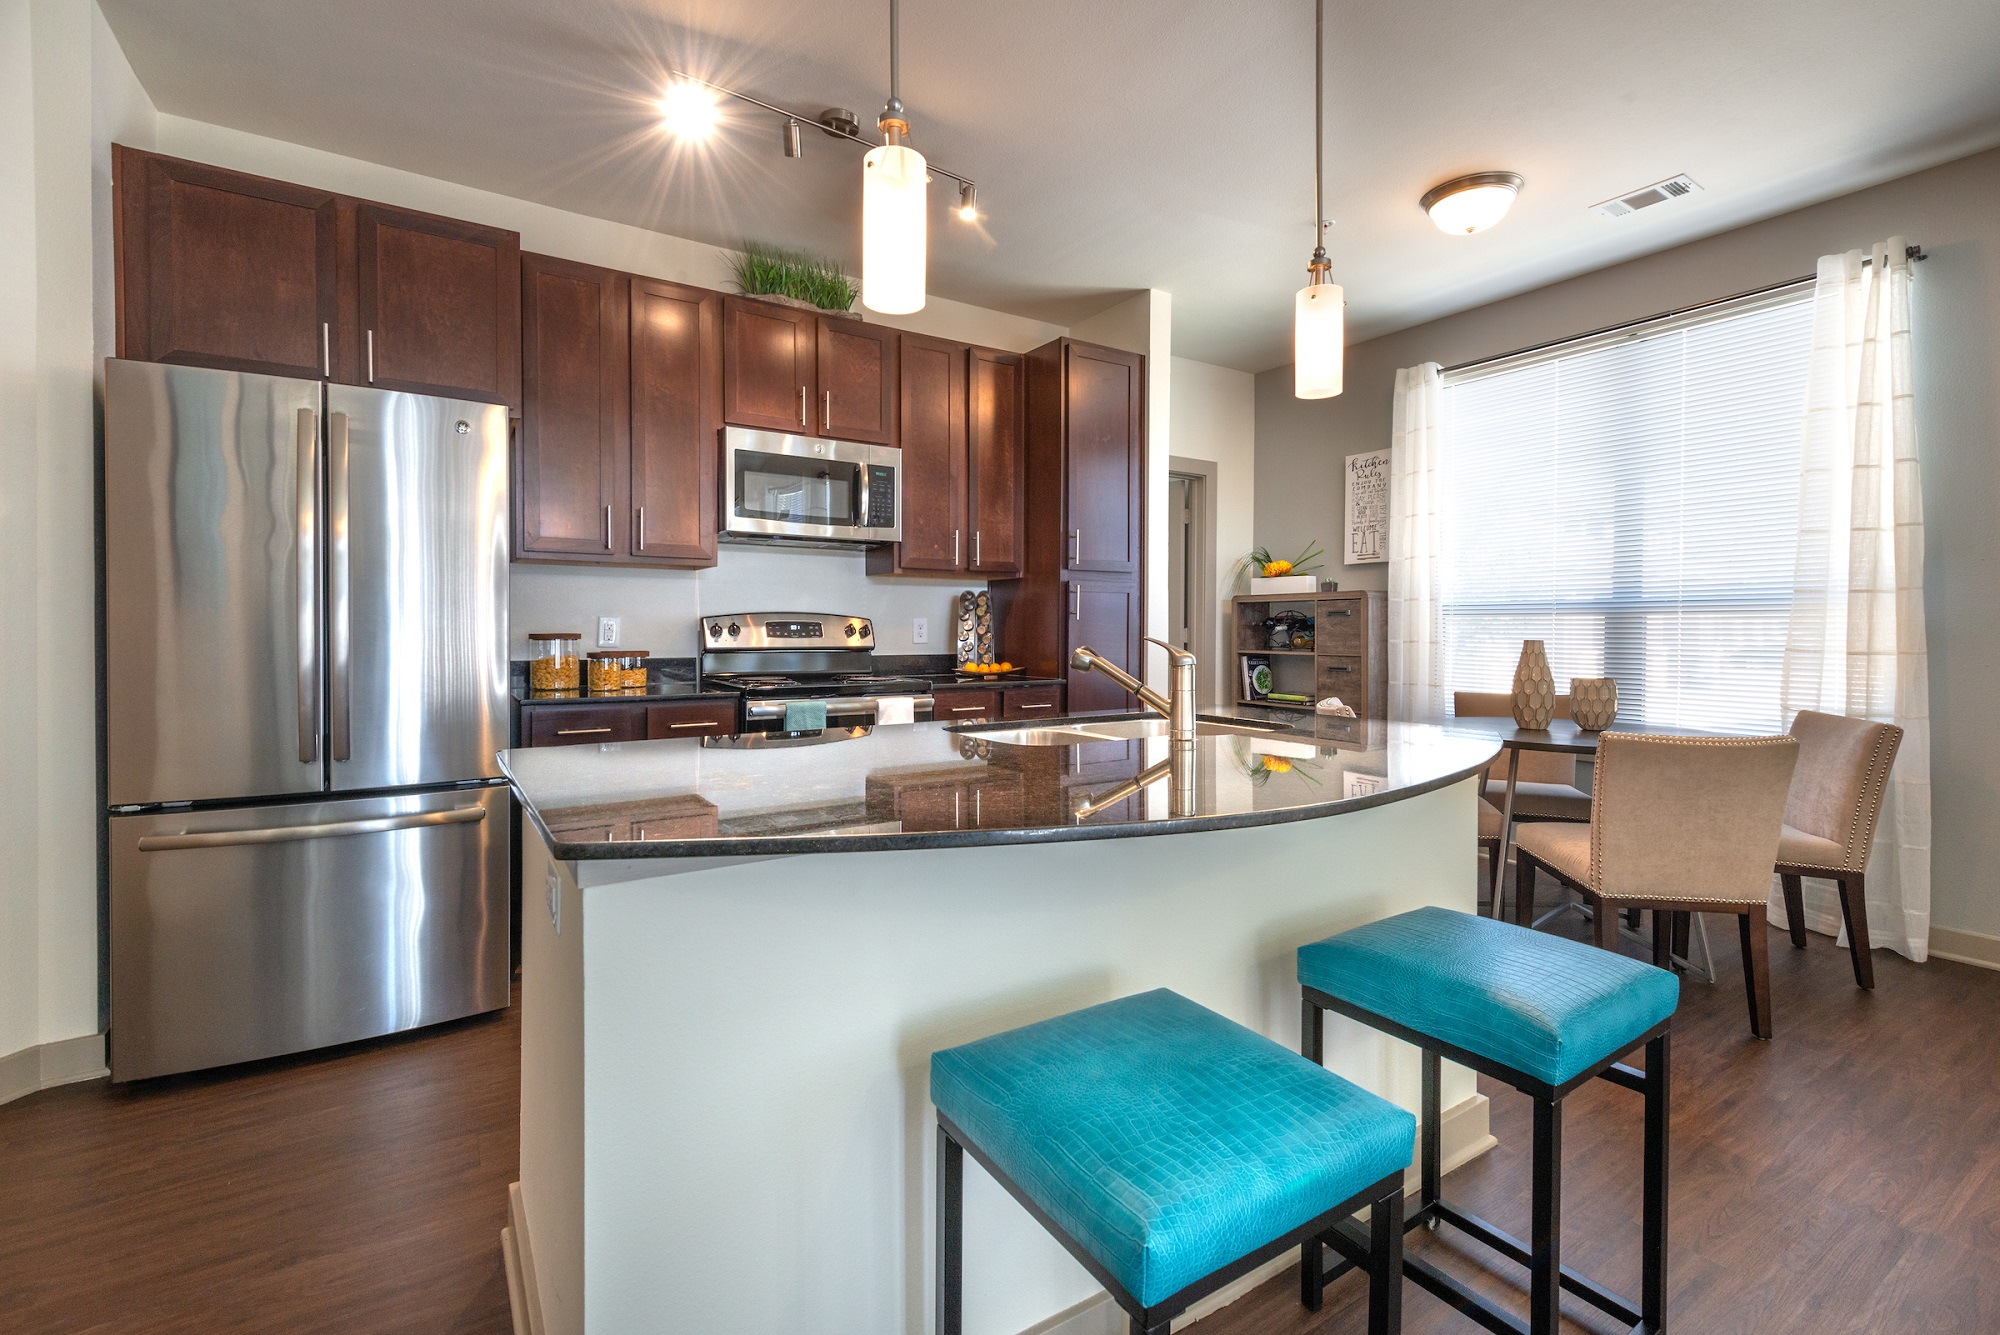 Kitchen with wood floors, designer lighting, kitchen island with bar seating, dining nook, granite counters and stainless steel appliances